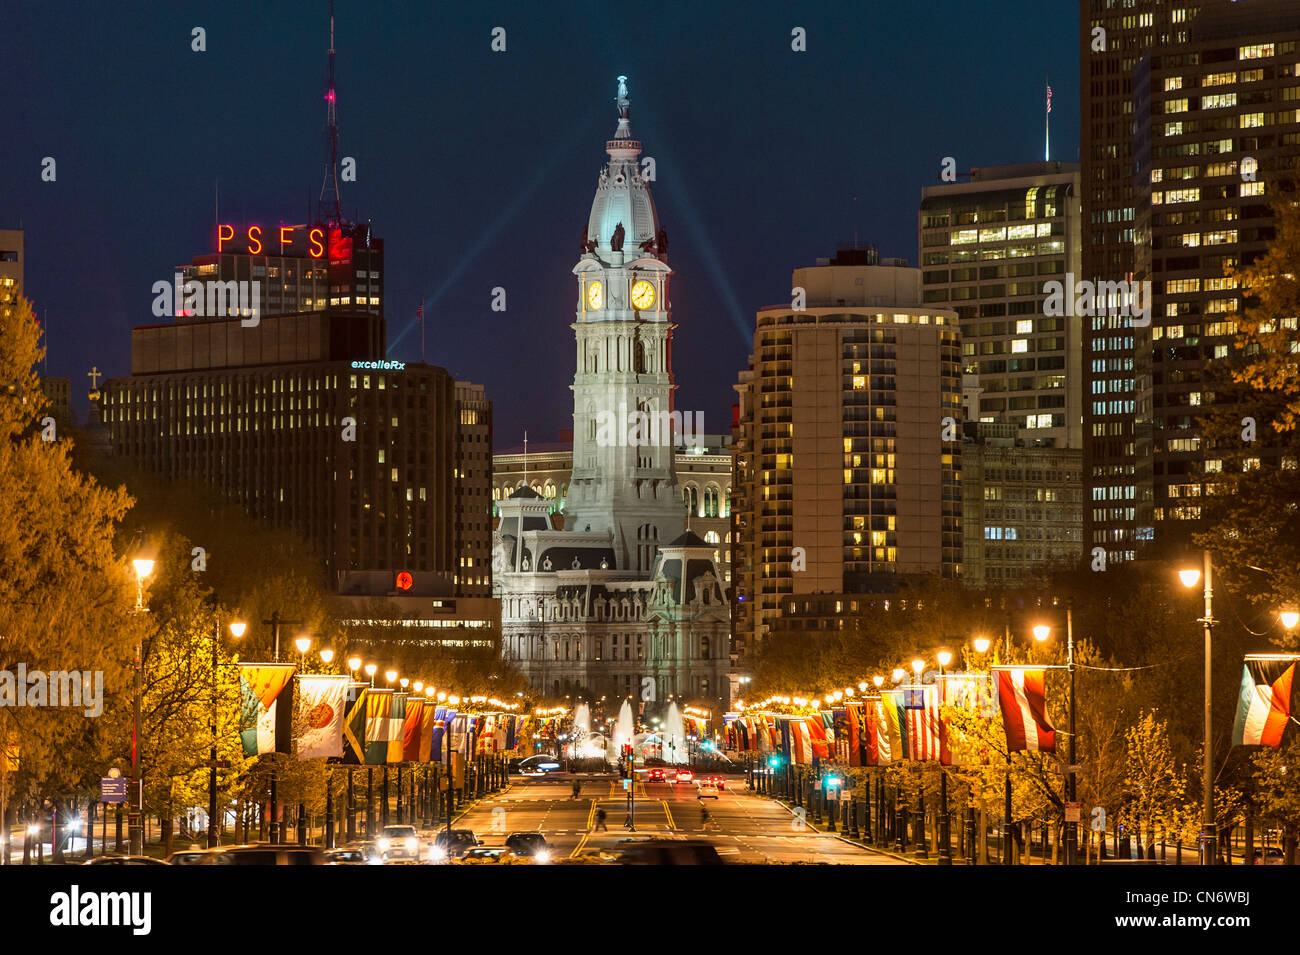 Ben Franklin Parkway et l'Hôtel de Ville, Philadelphie, Pennsylvanie, USA Photo Stock